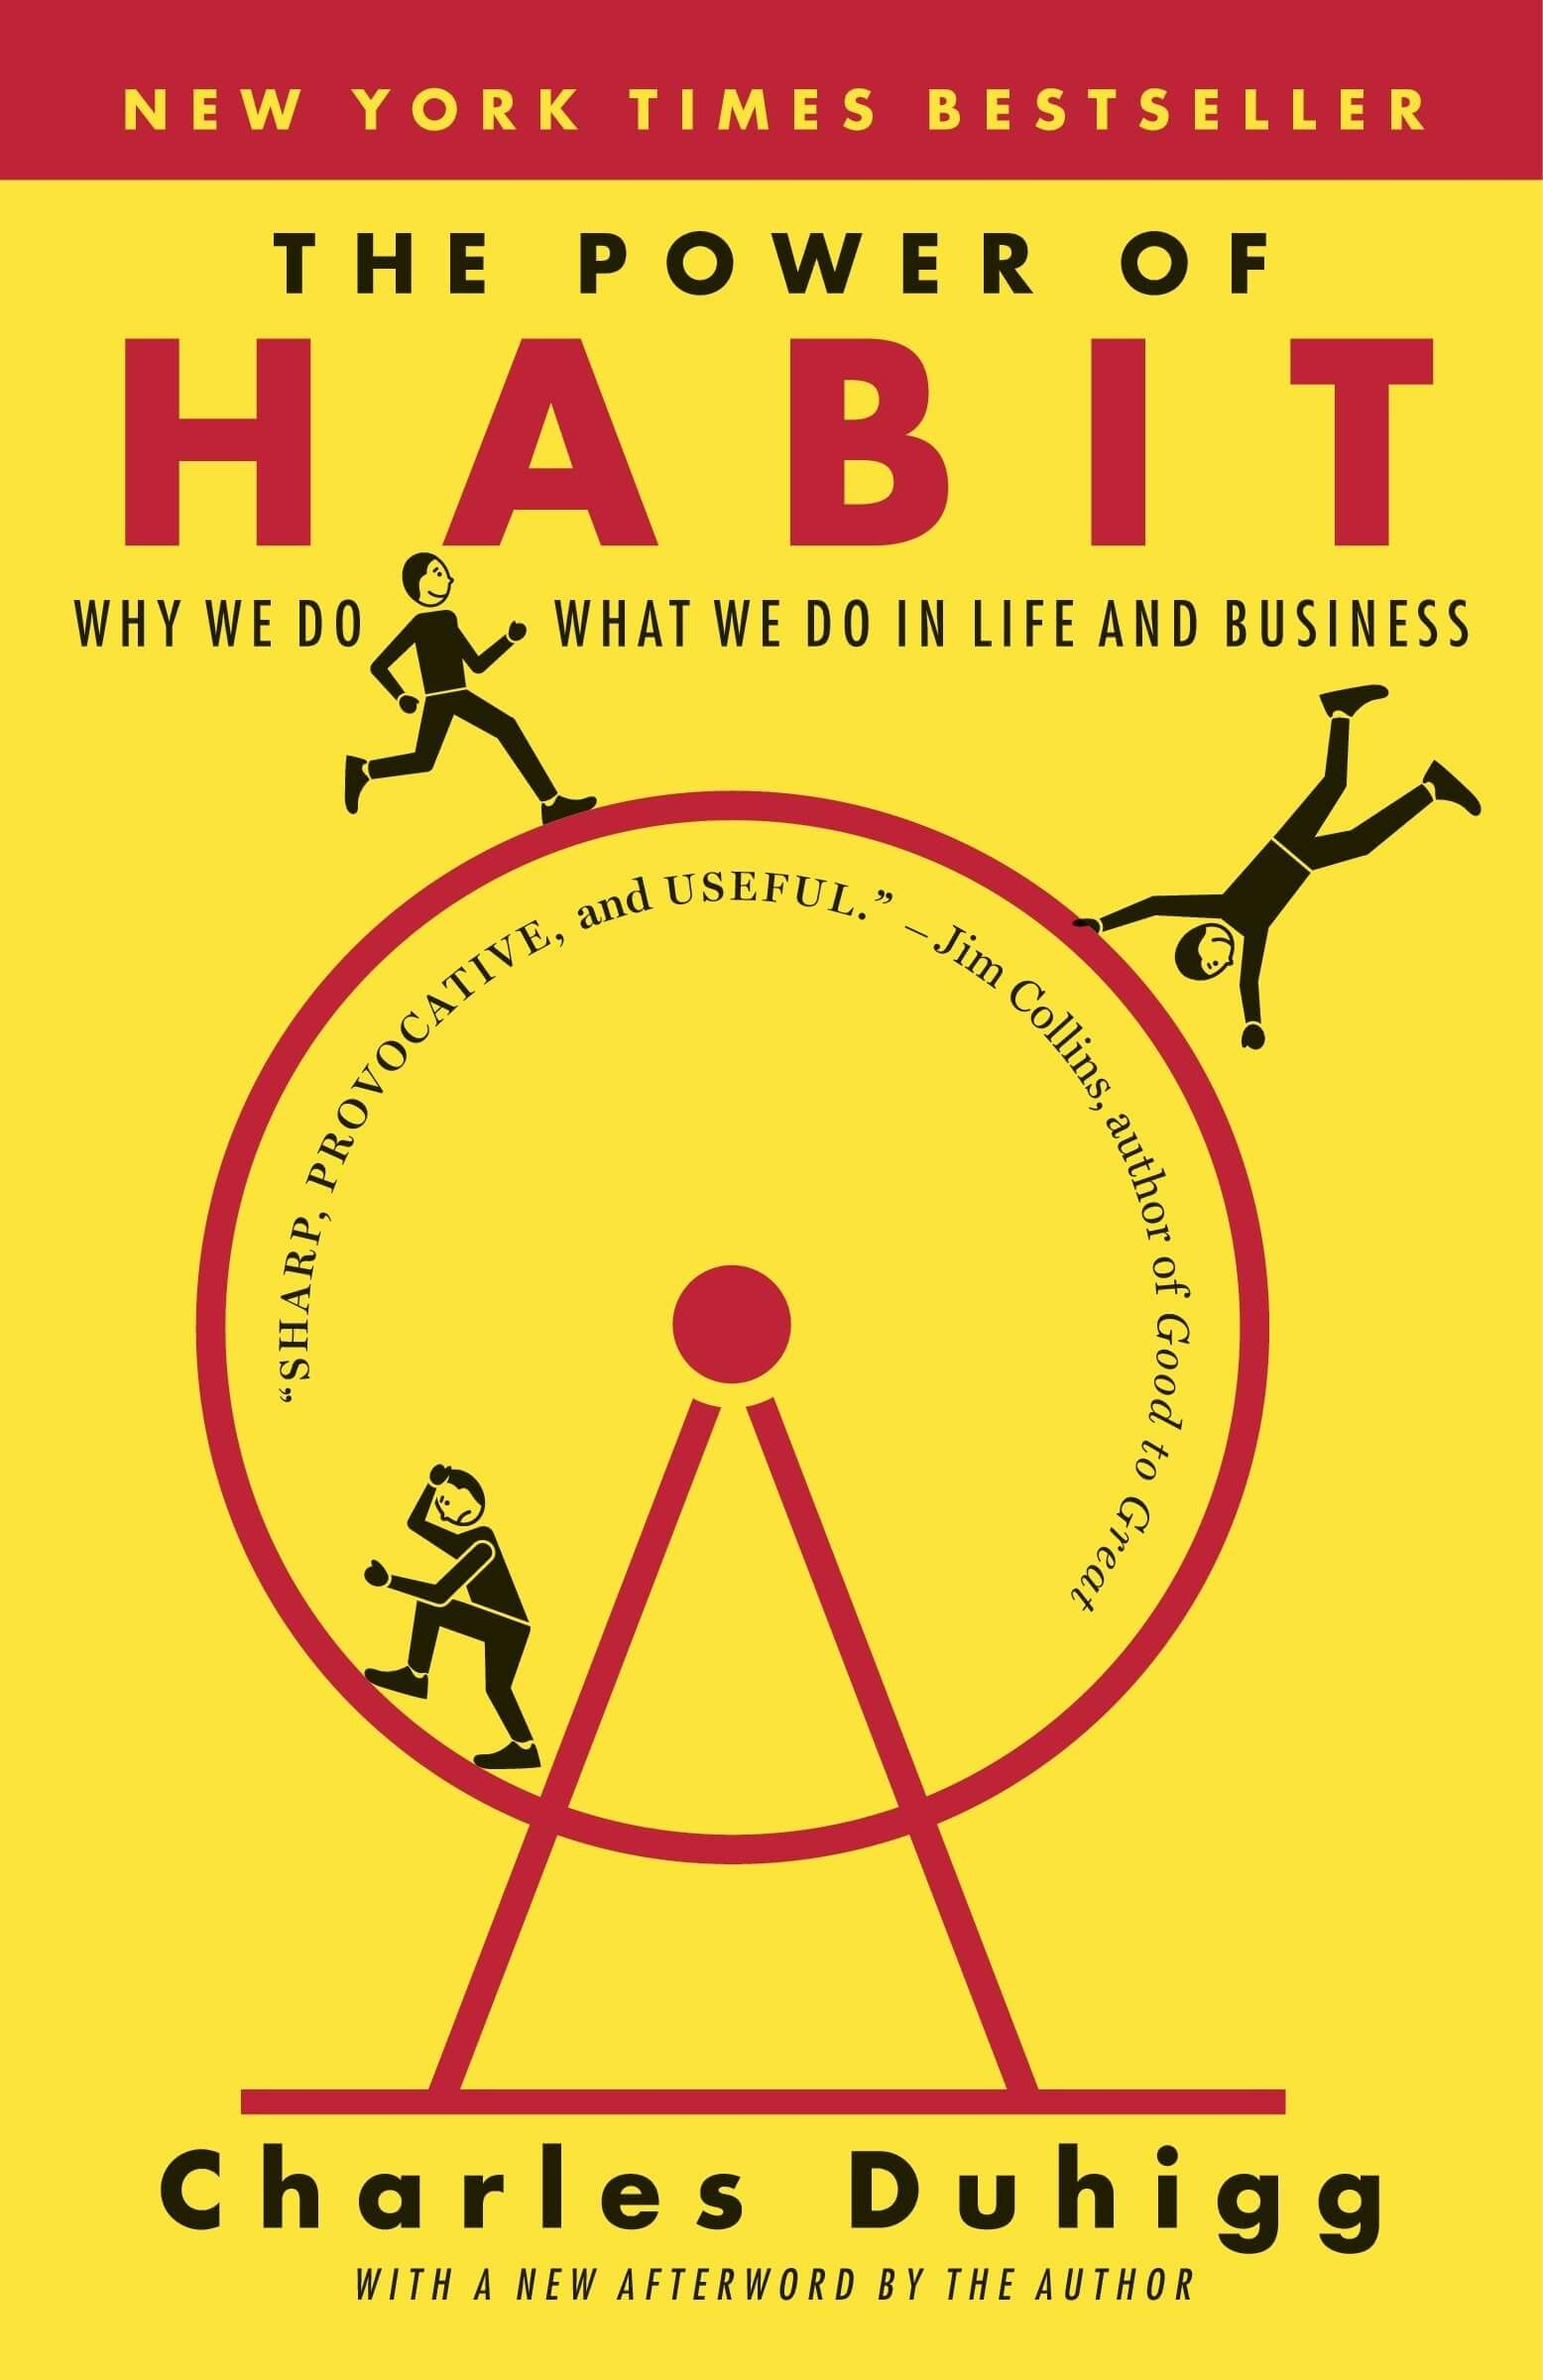 book summary - The Power of Habit by Charles Duhigg